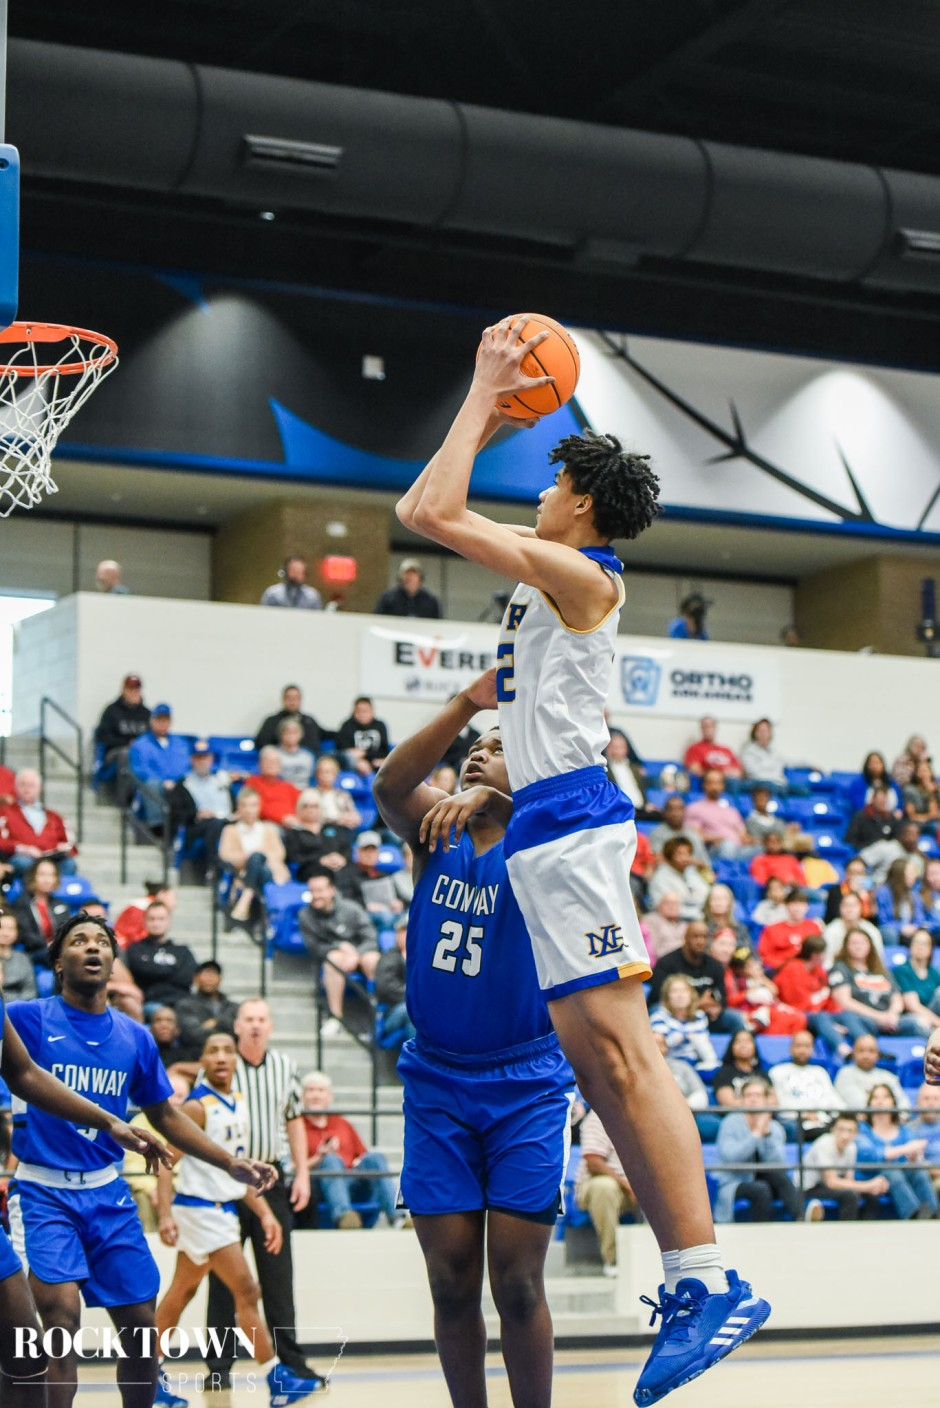 NLR_conway_bball_2020(i)-19